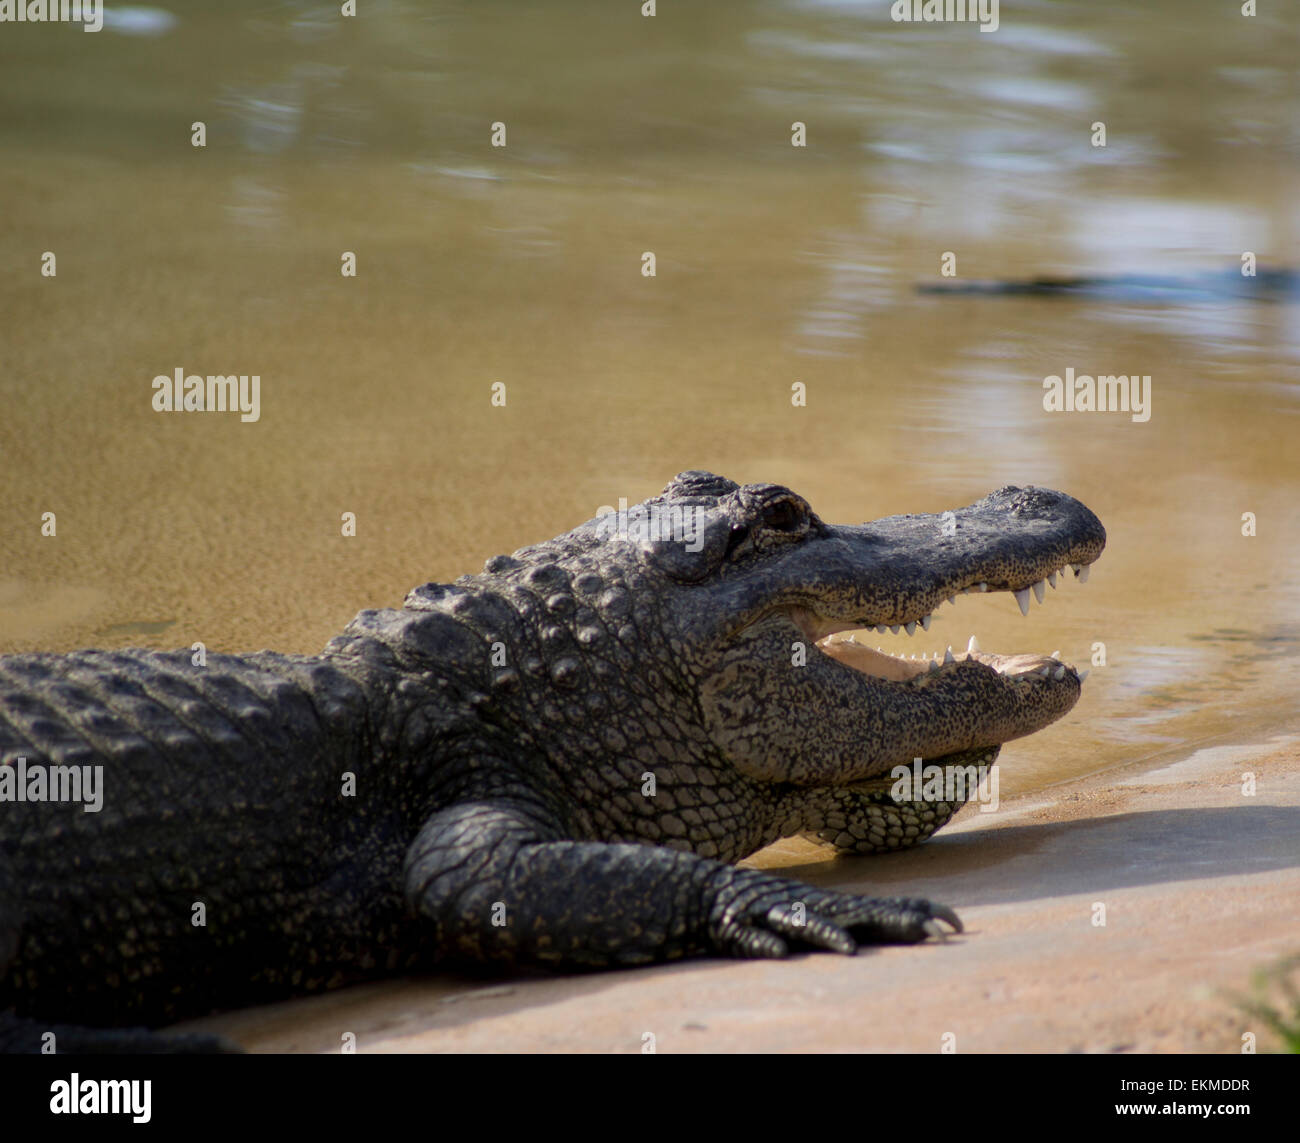 Alligator waiting for its prey - Stock Image